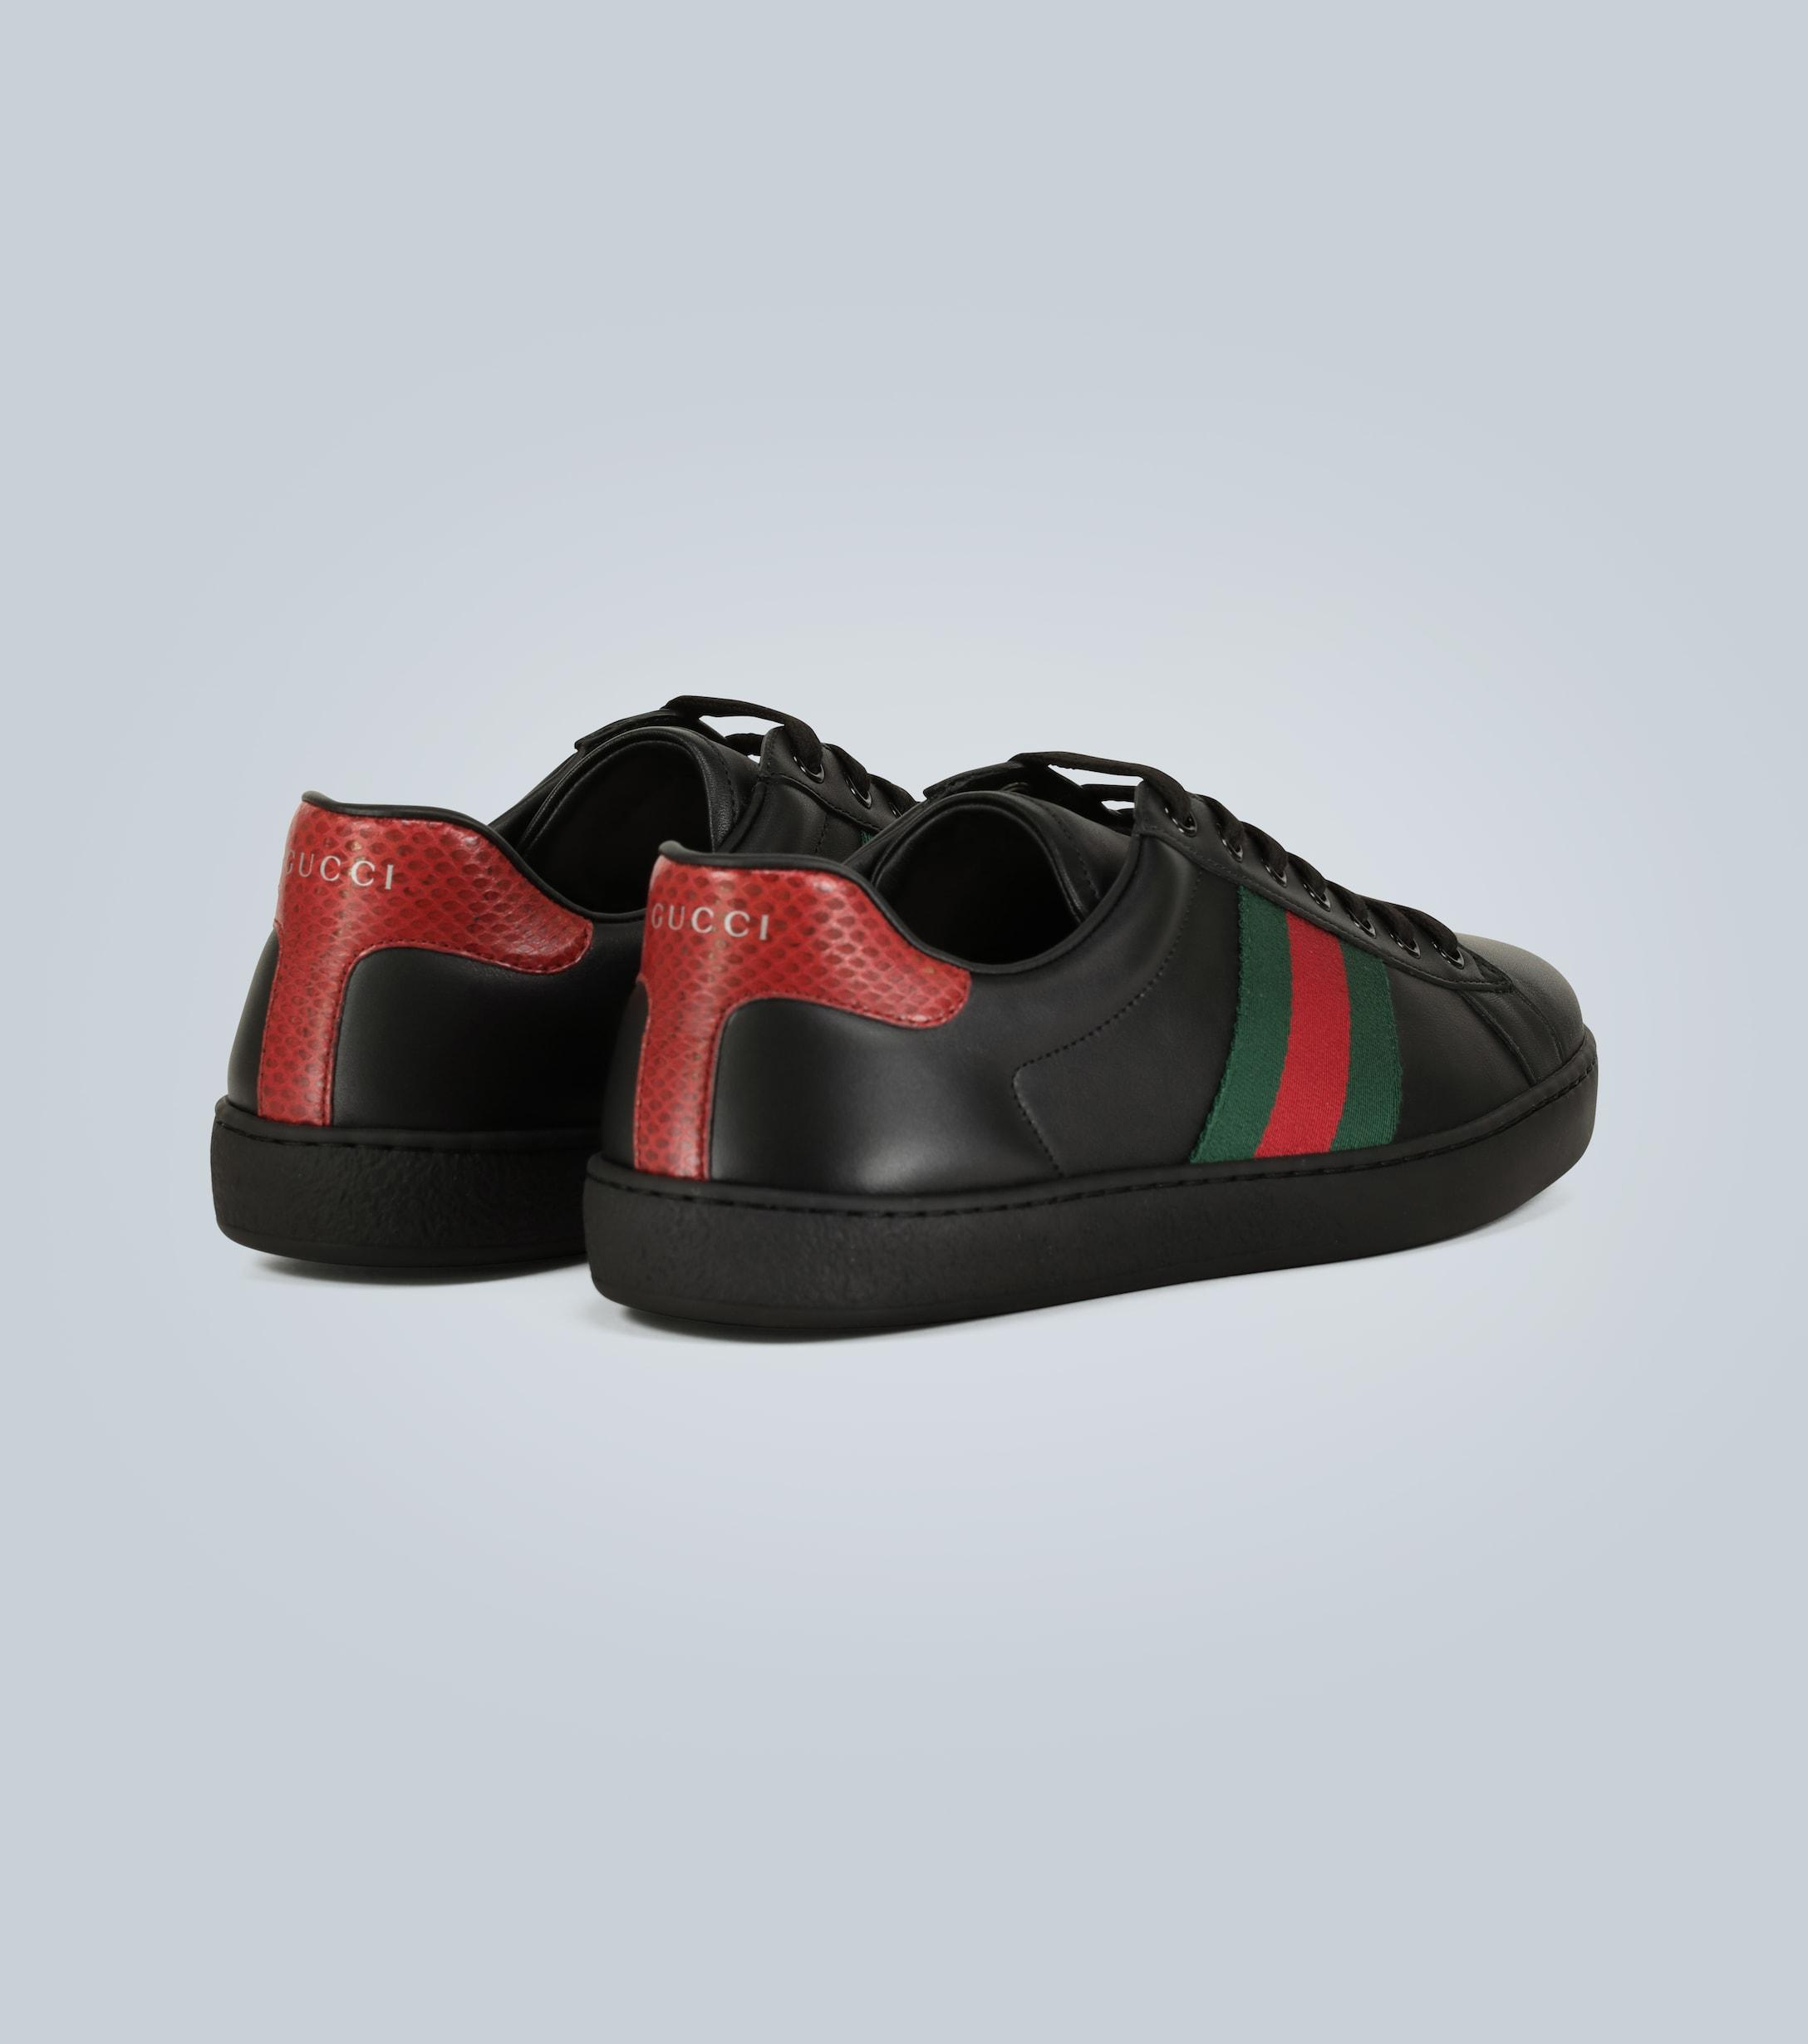 Gucci Ace Leather Sneaker in Black